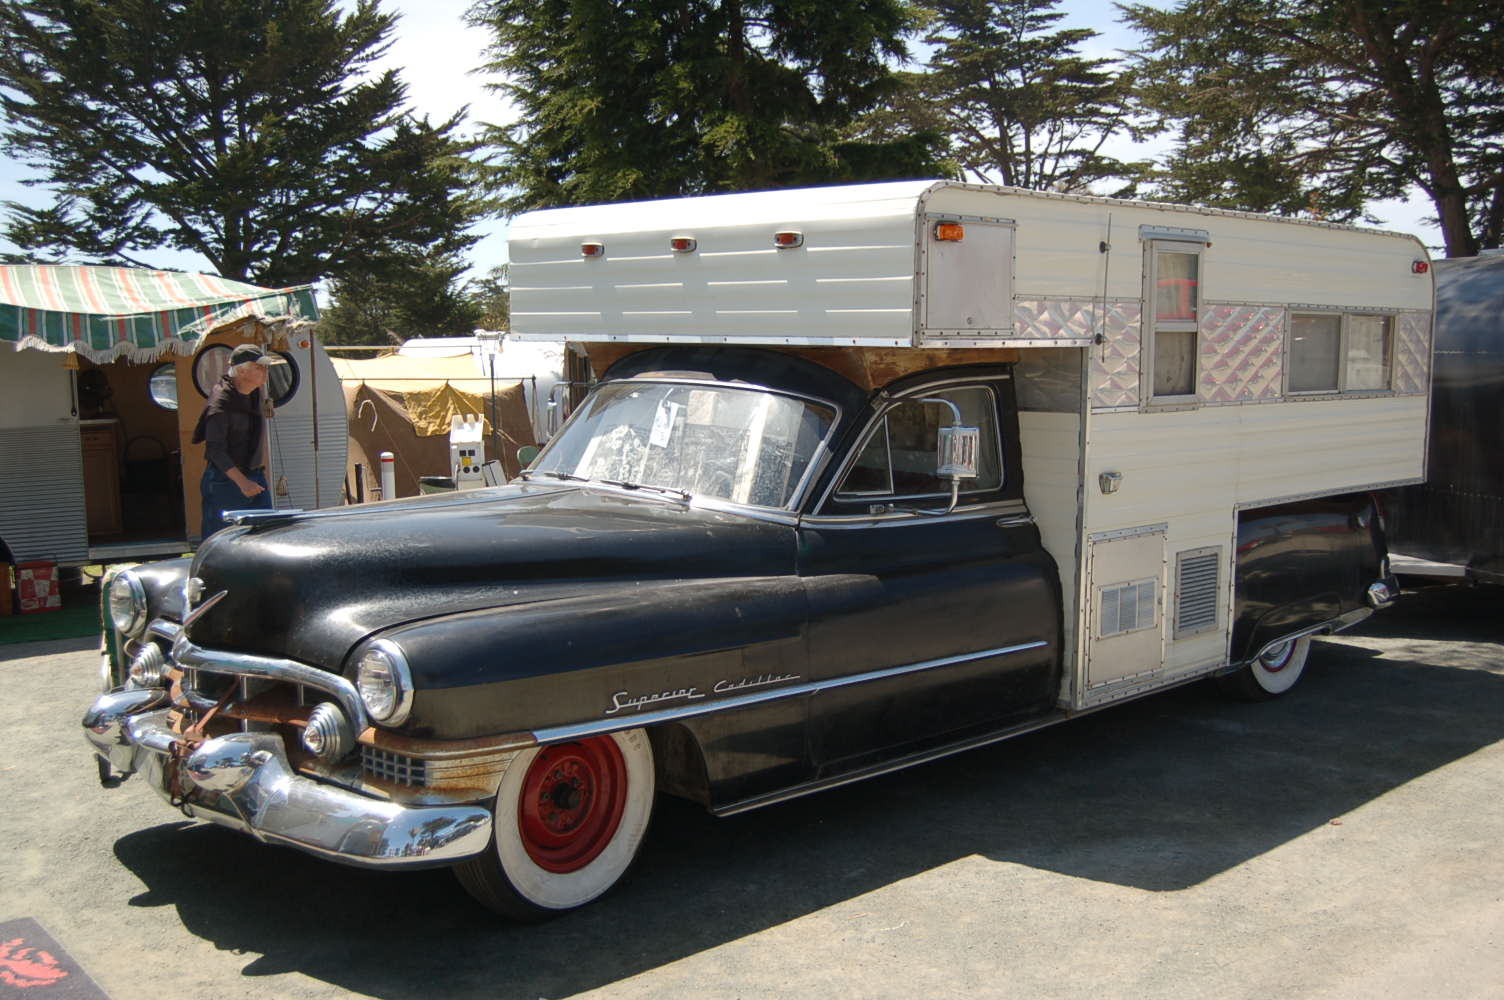 Vintage Truck-Based Trailer Campers, from OldTrailer.com